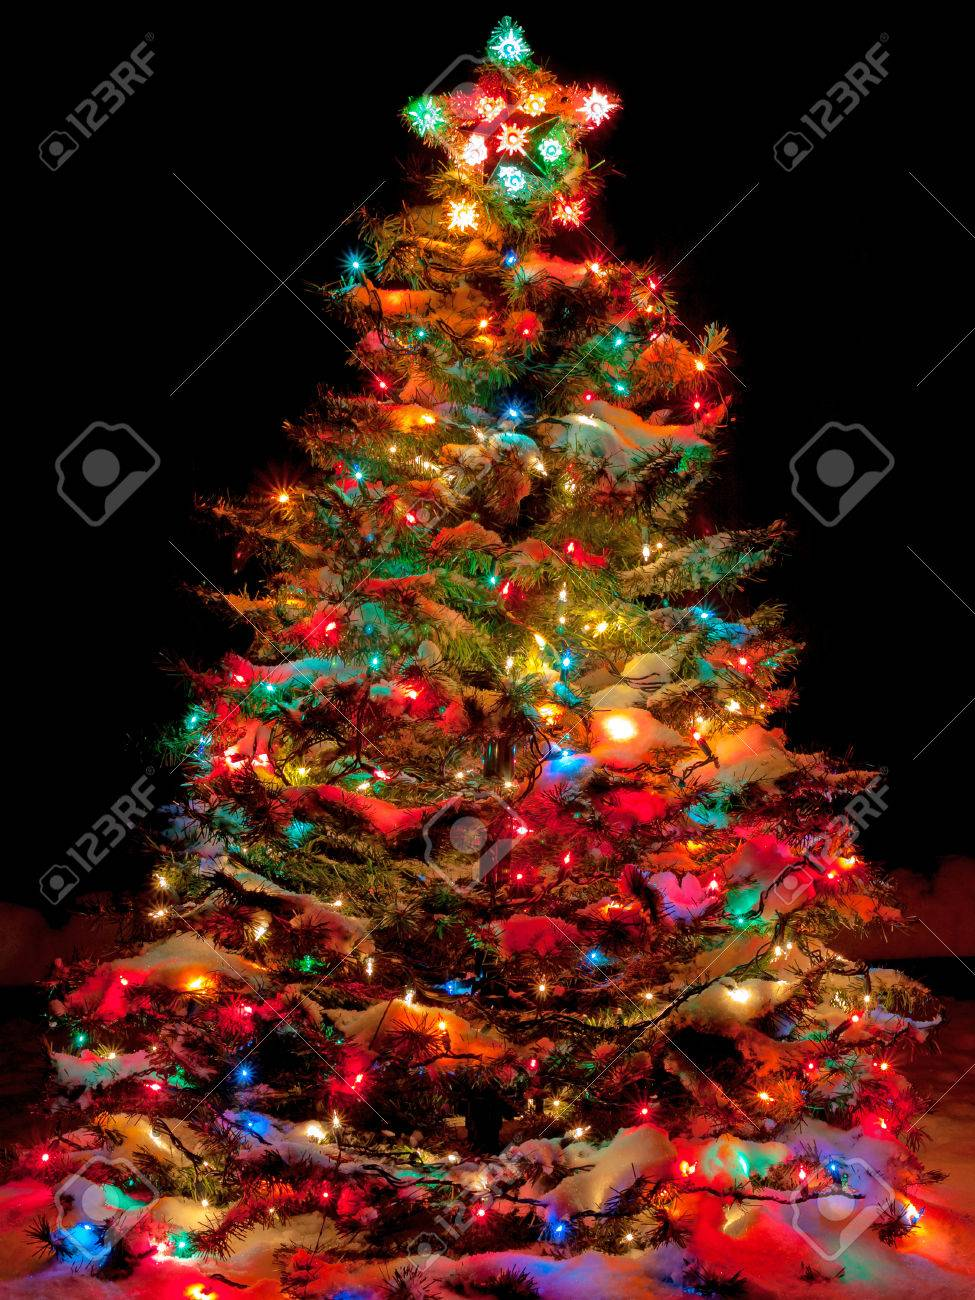 snow covered christmas tree with multi colored lights at night stock photo 33176825